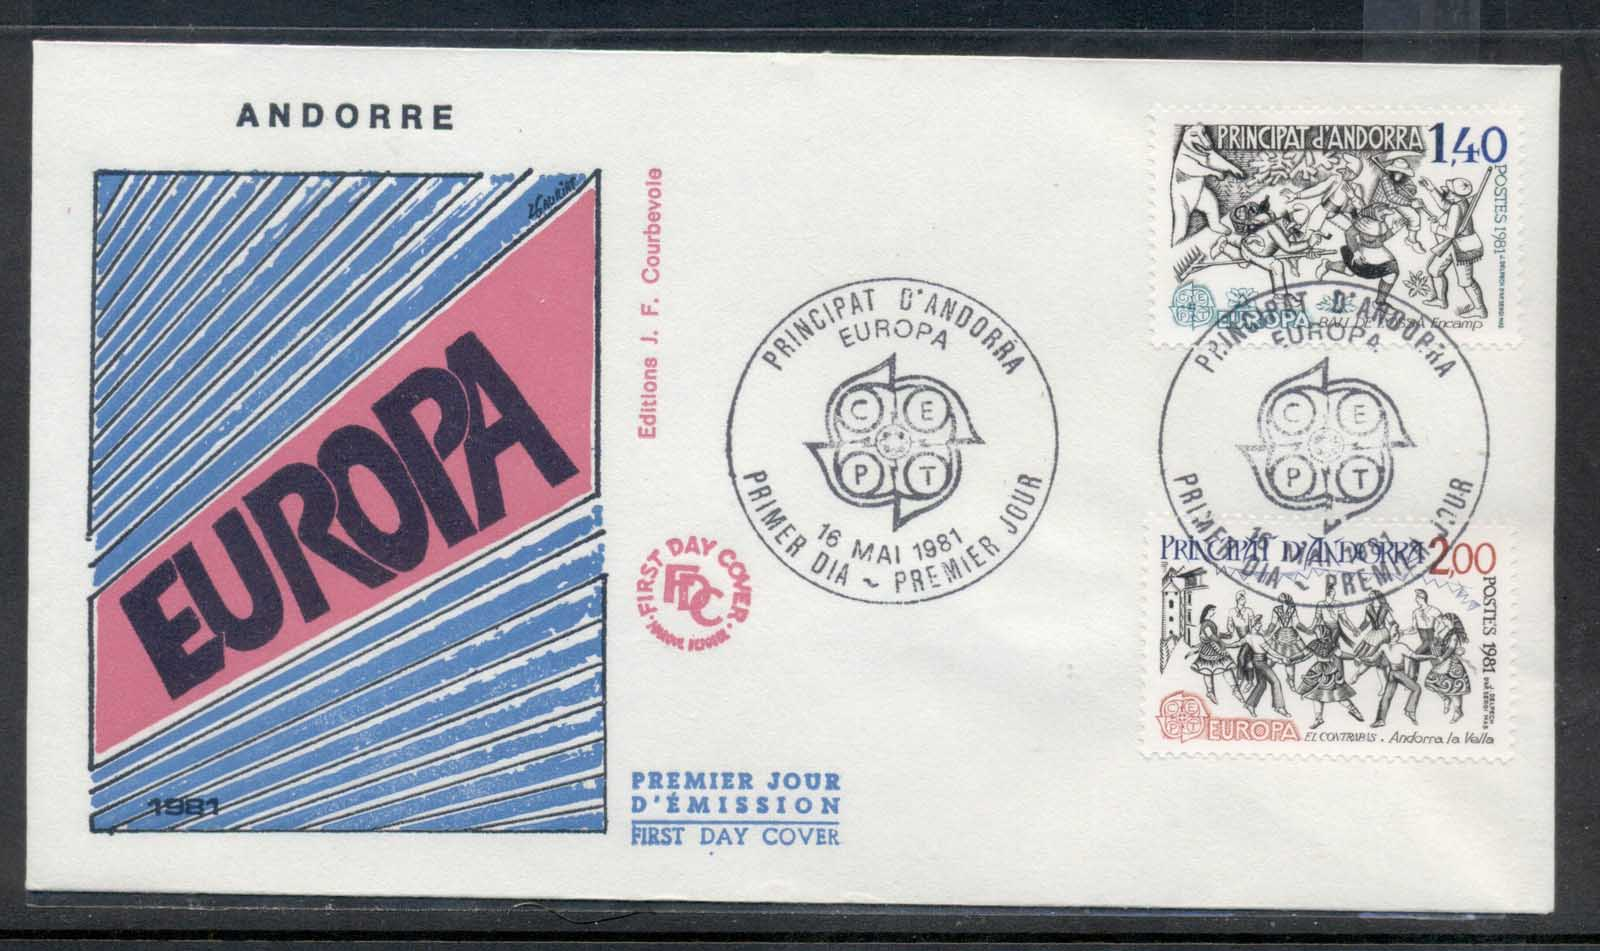 Andorra (Fr.) 1981 Europa Folklore FDC